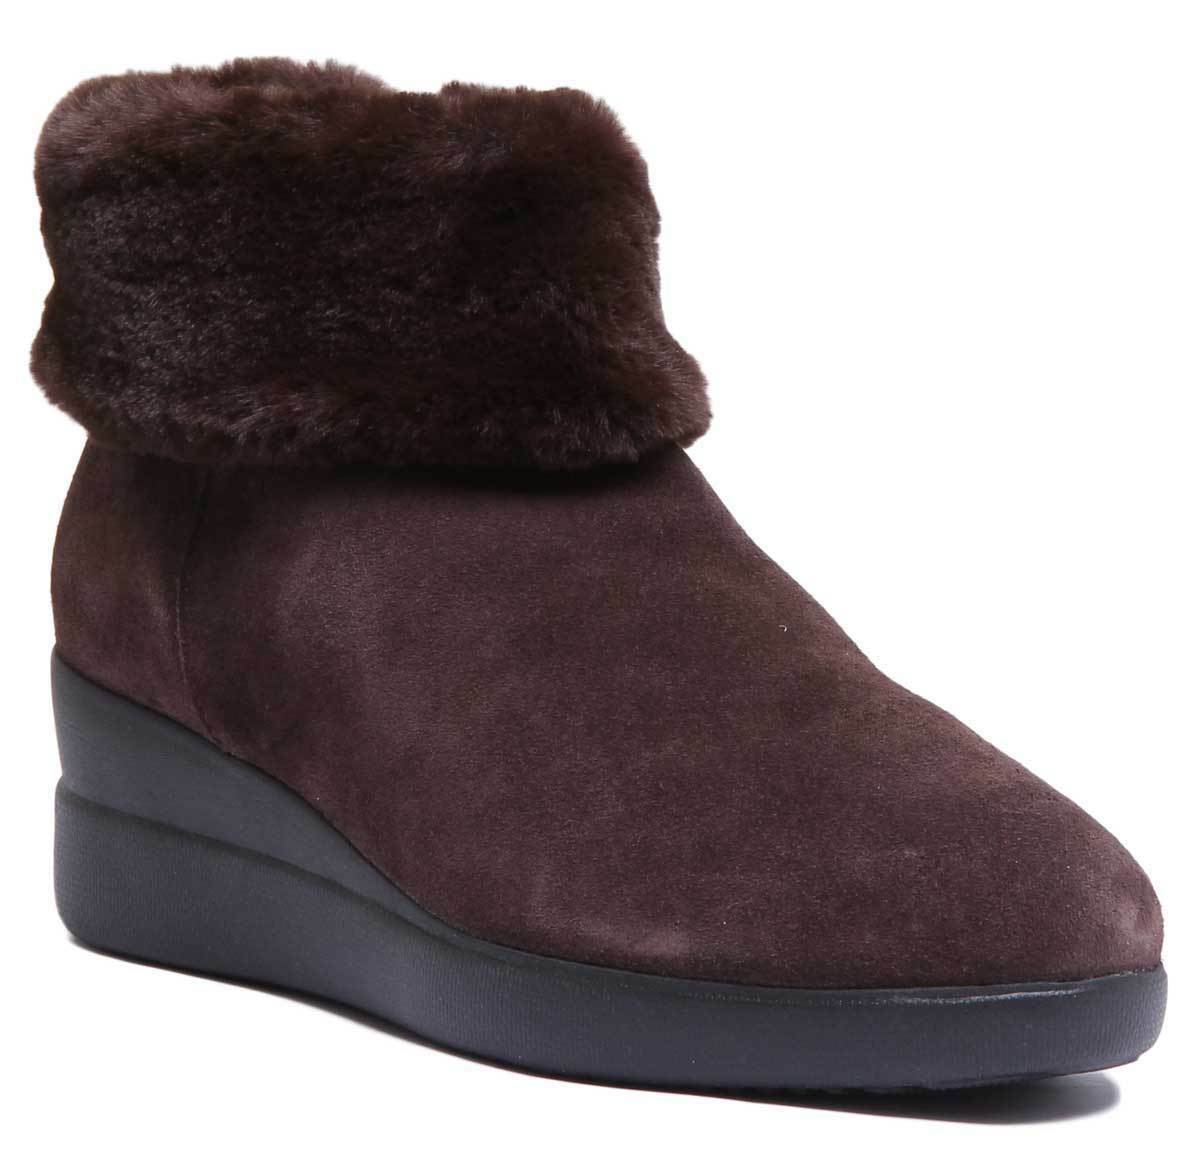 Geox Stardust damen Suede Wedge Winter Ankle Stiefel In Coffee Größe UK 3 - 8